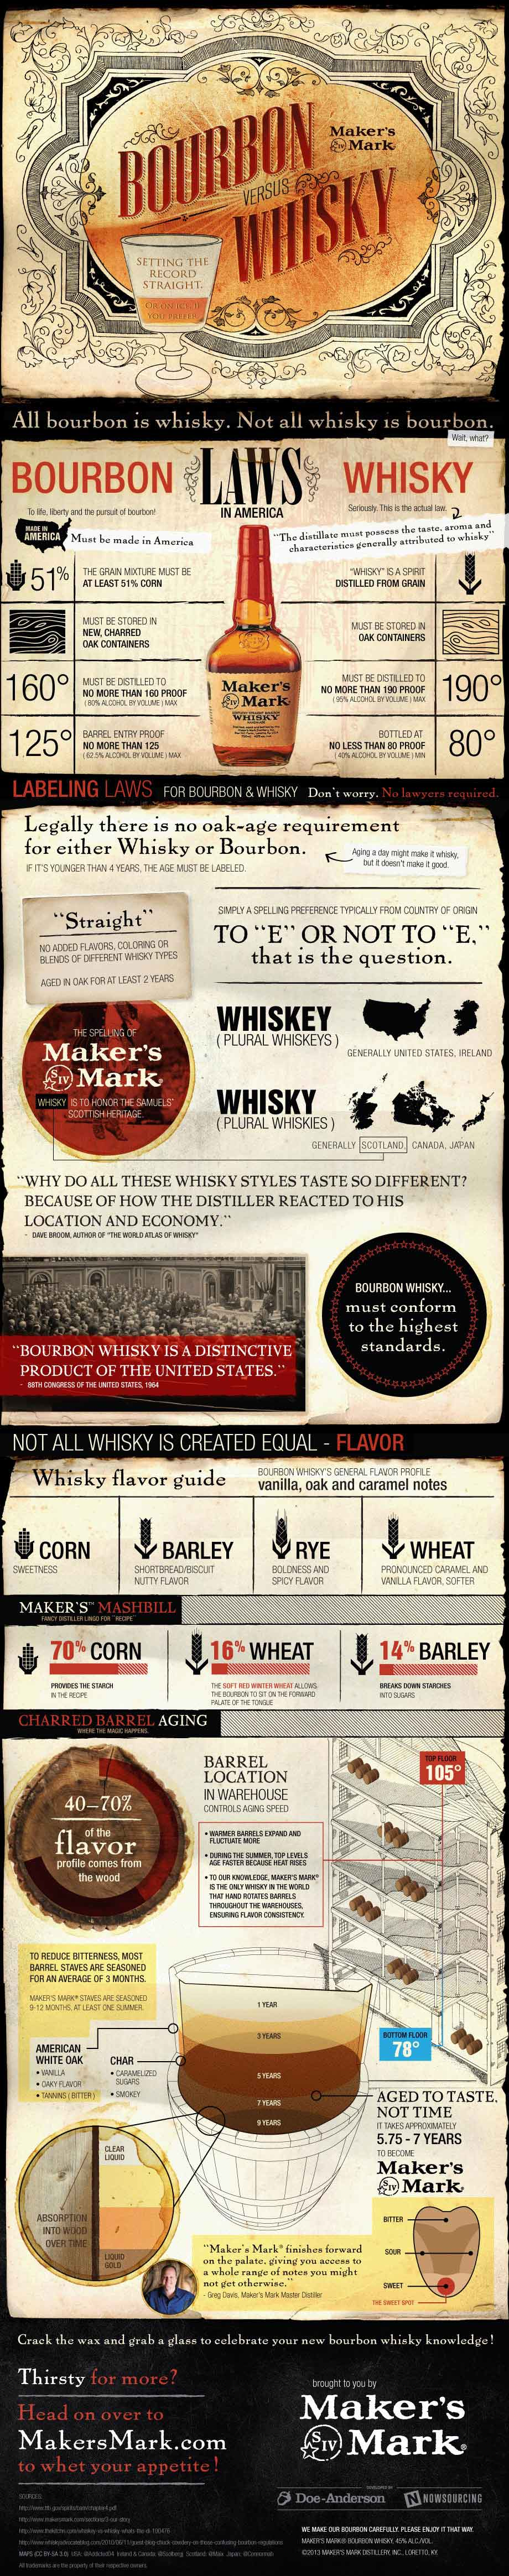 Bourbon Versus Whisky [INFOGRAPHIC] #bourbon #whisky